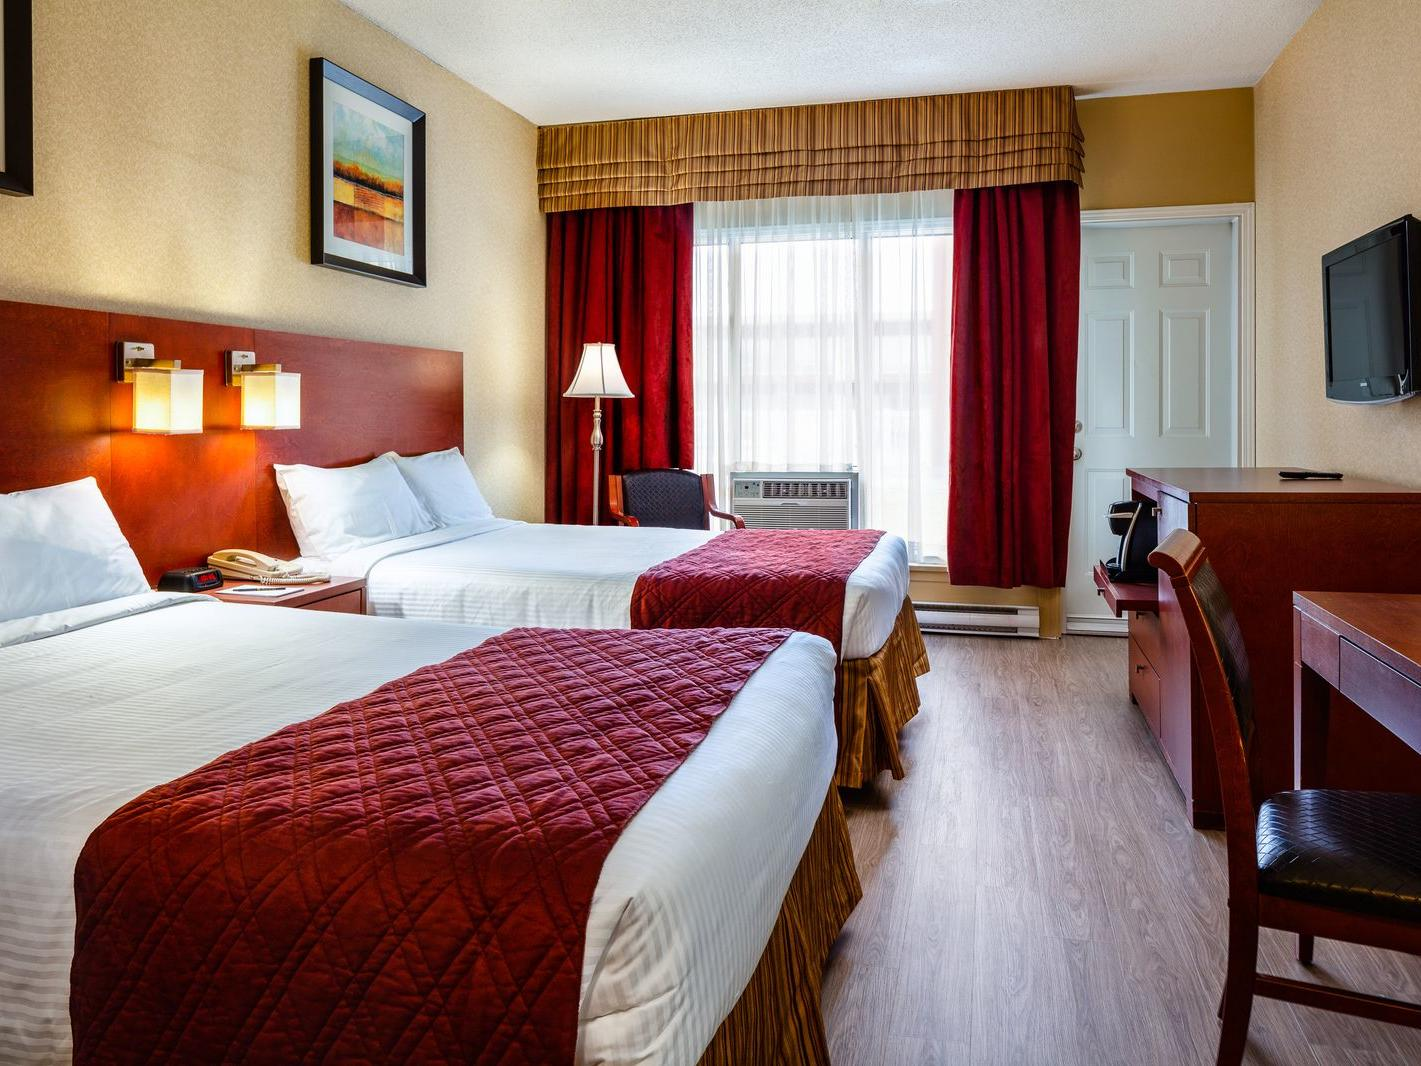 two beds in spacious hotel room with window